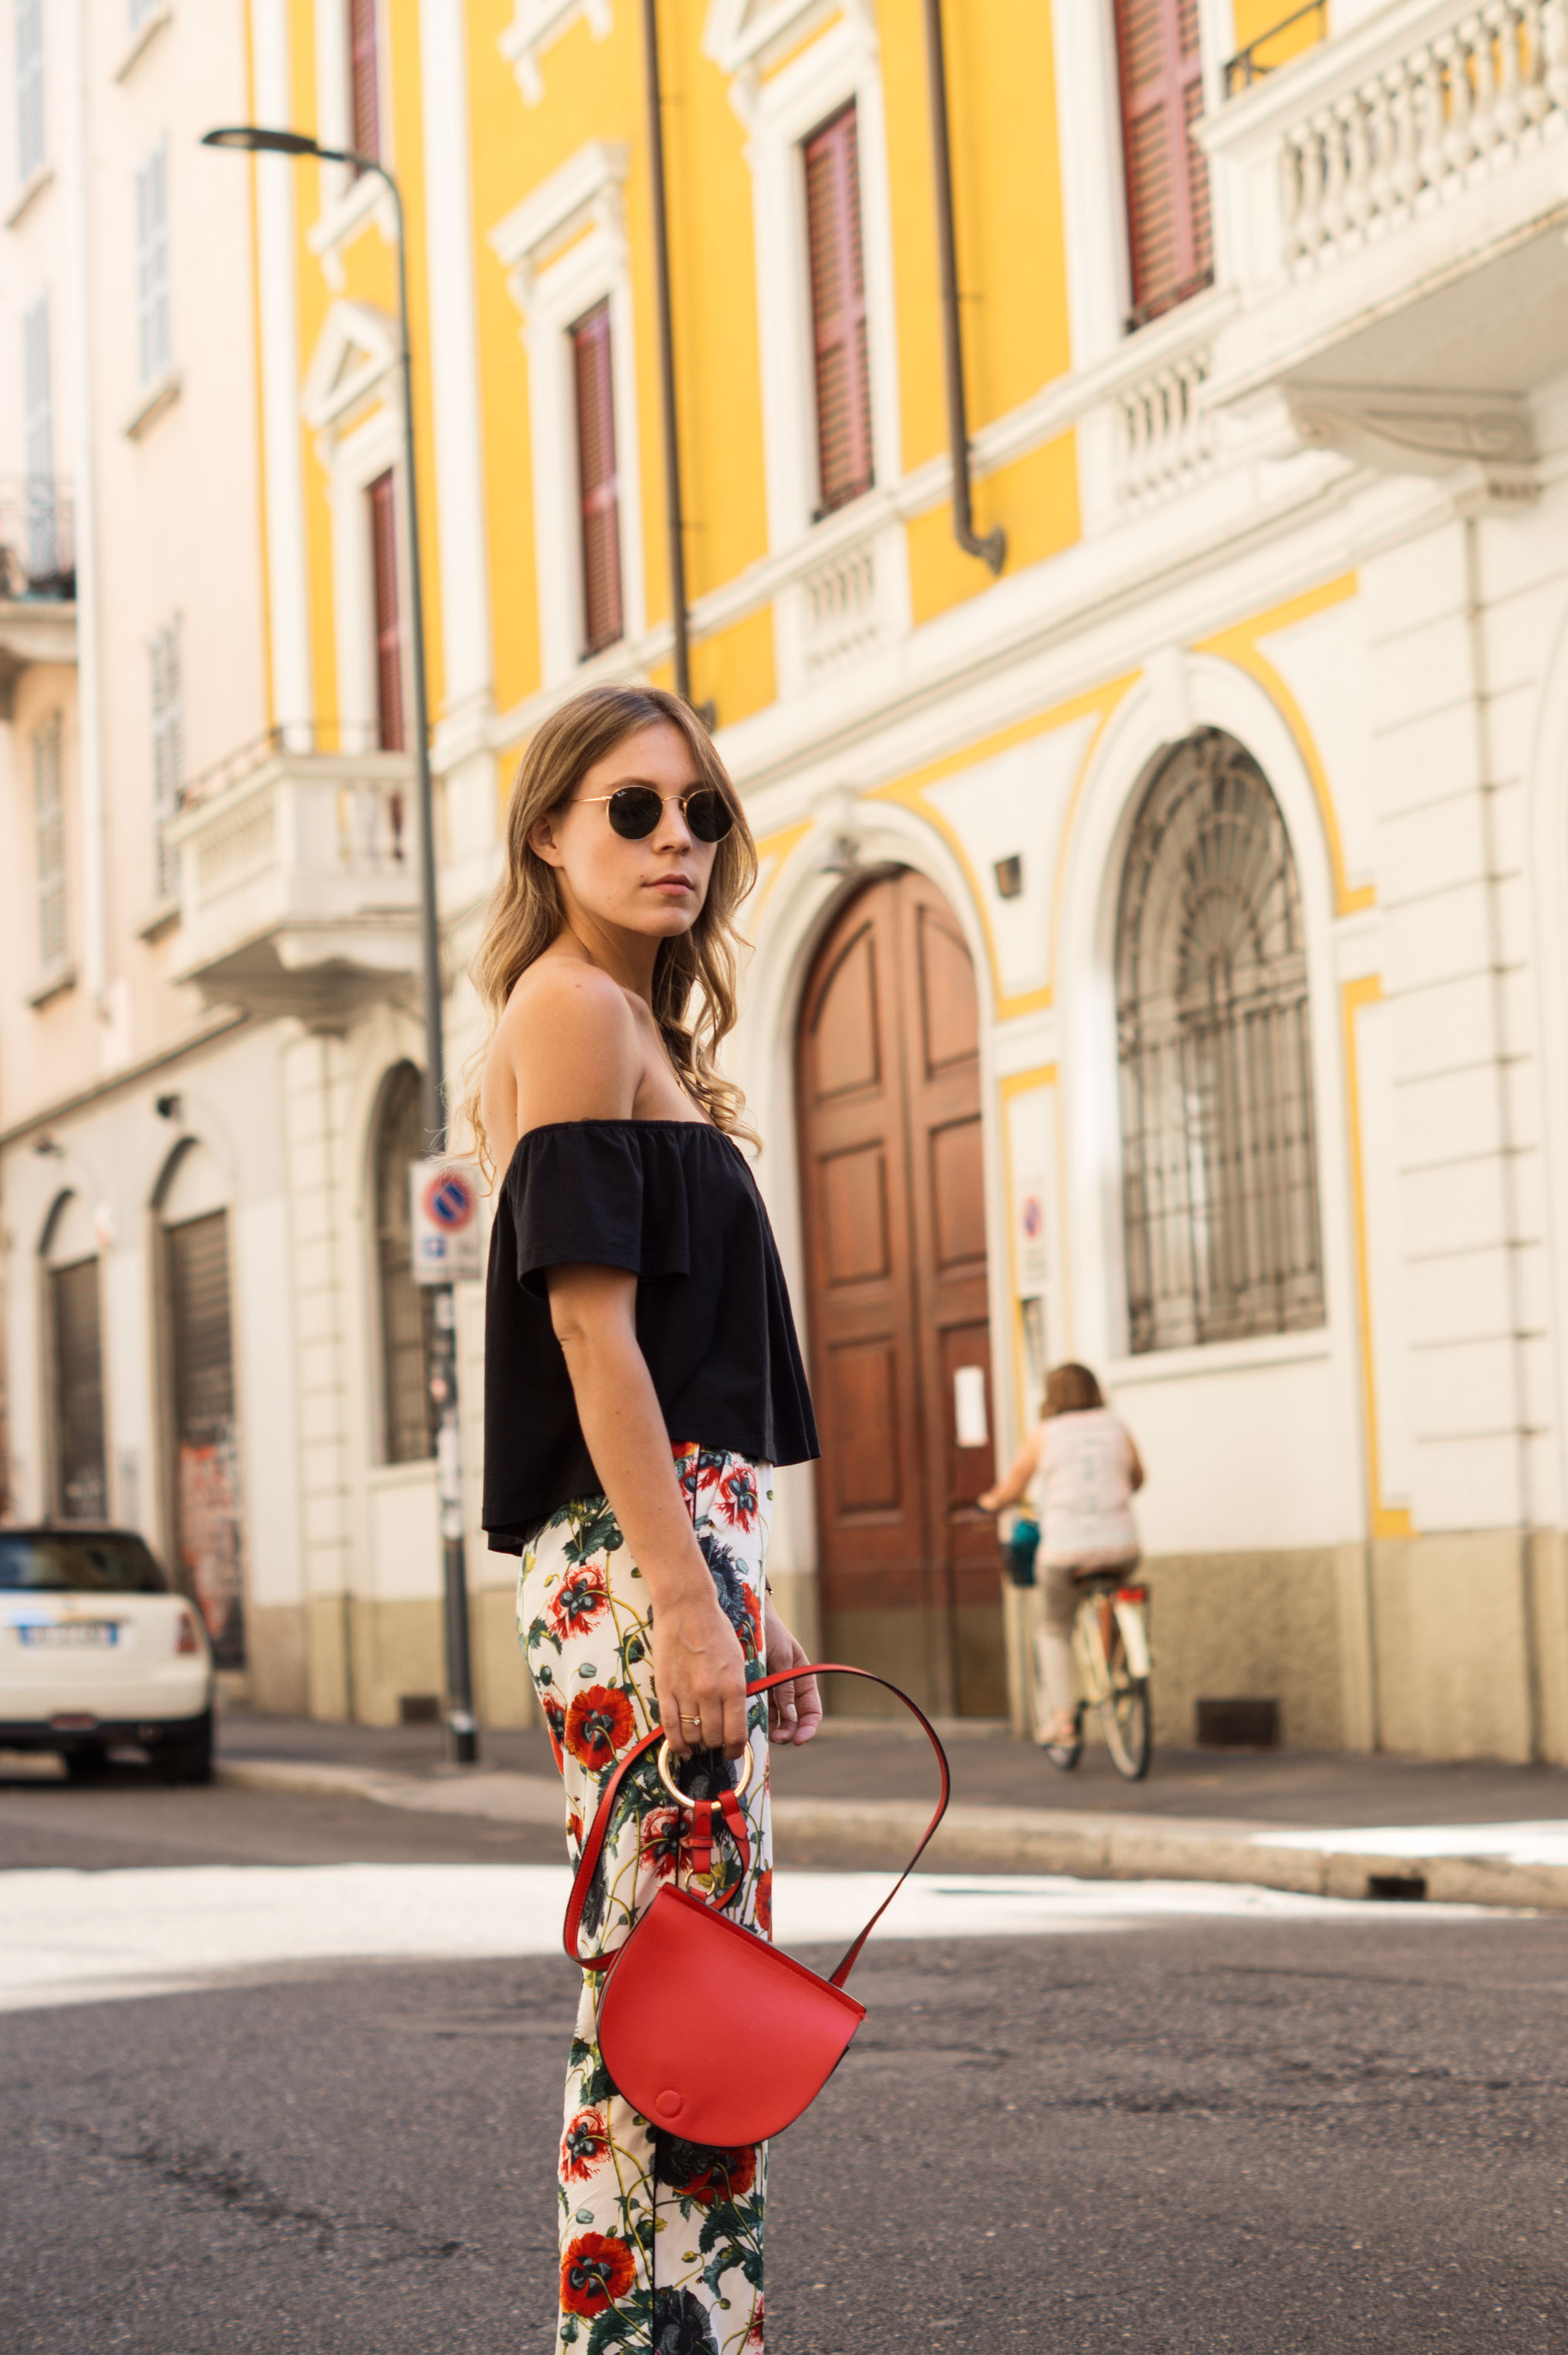 H&M Printhose Milan Sariety Fashionblogger Sommerlook Mailand rote Tasche Chanel Schuhe Dupes Summer Floral Print-3